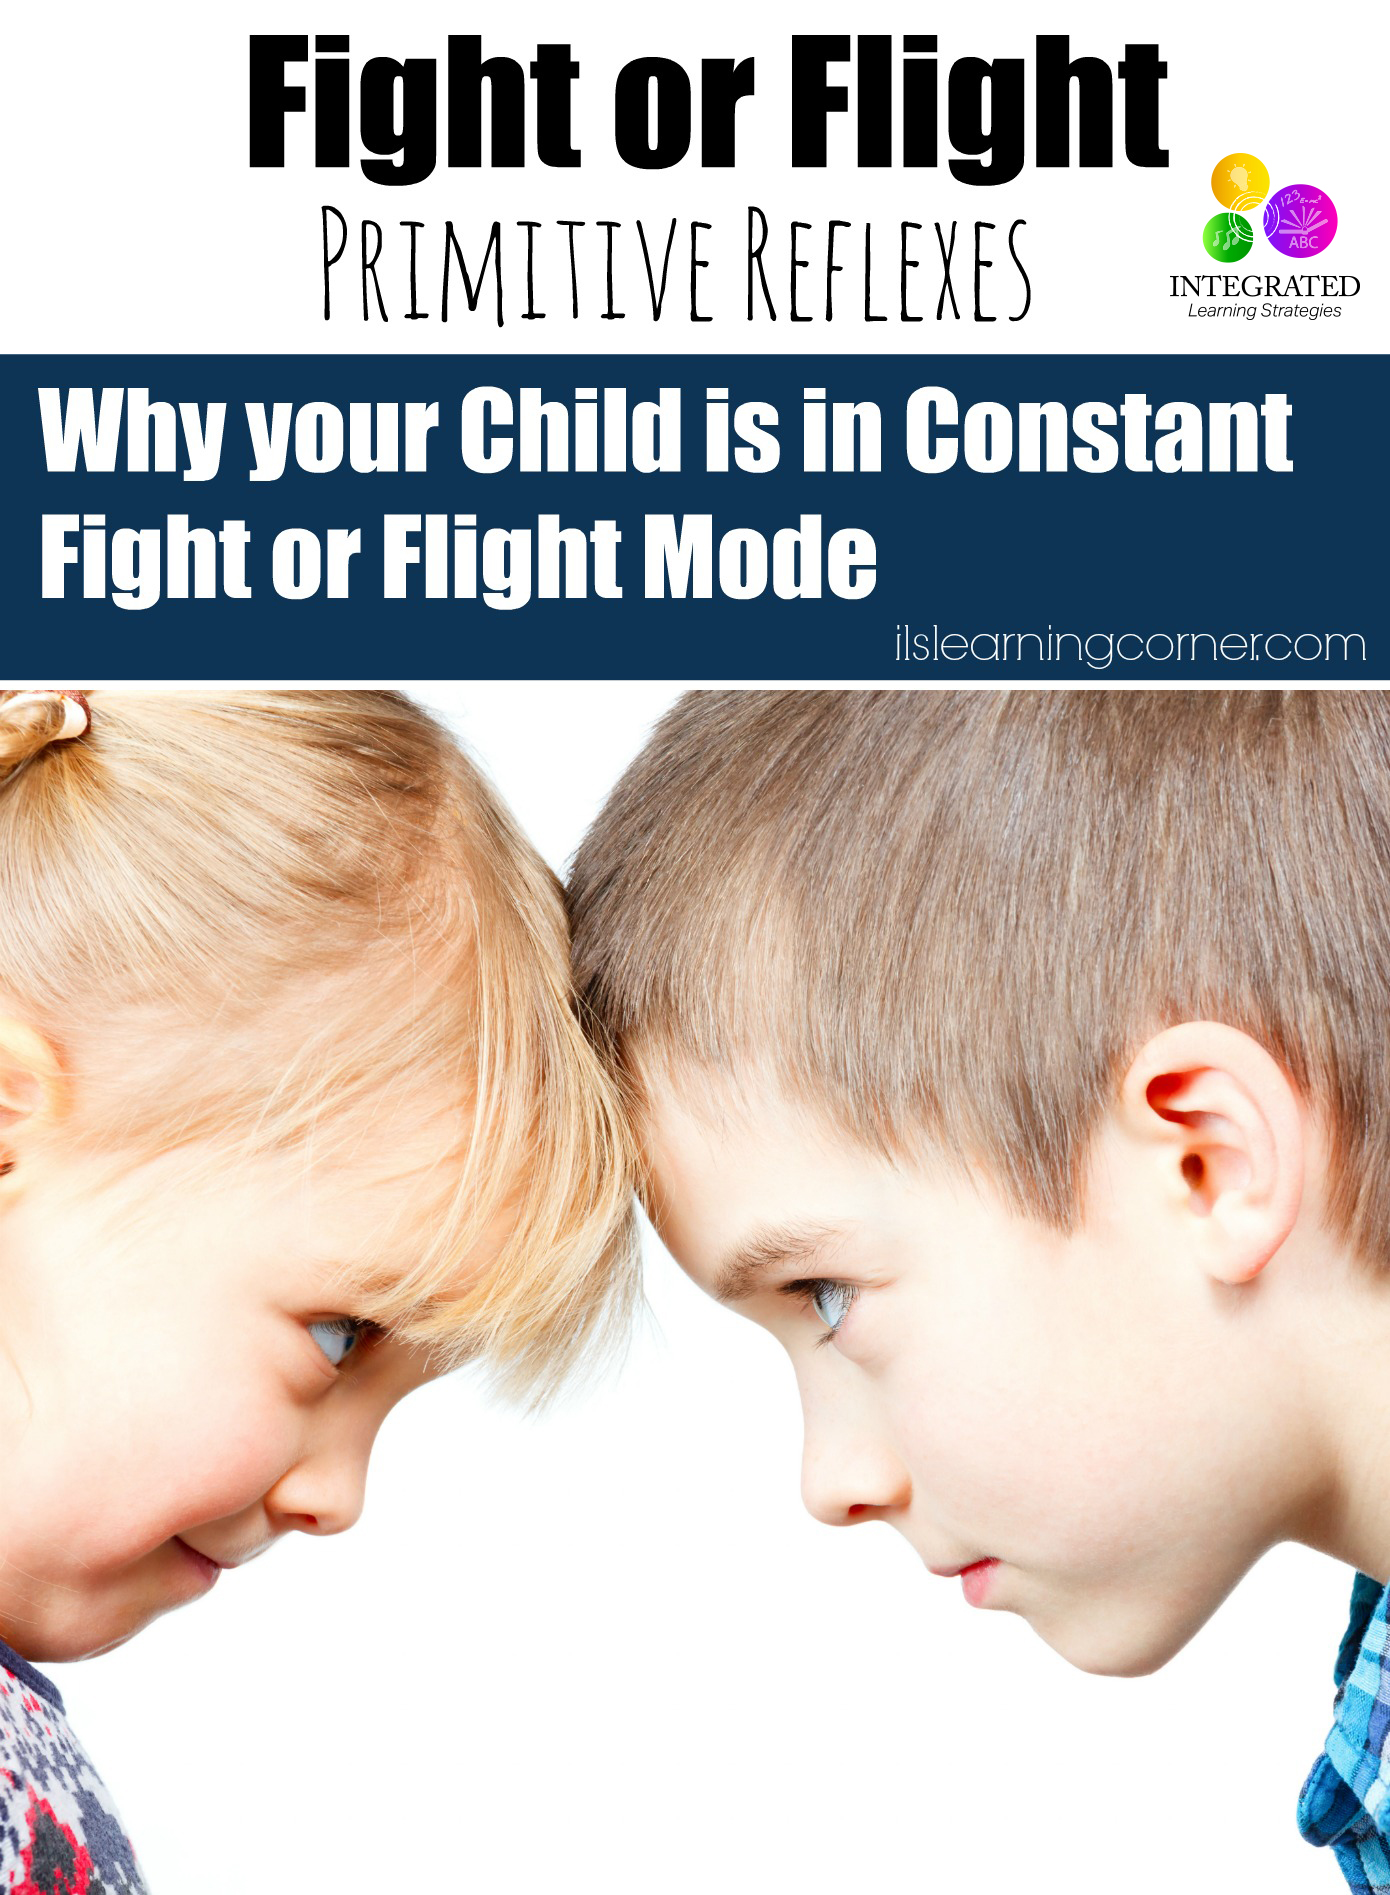 Primitive Reflexes A Child in Constant Fight or Flight Mode